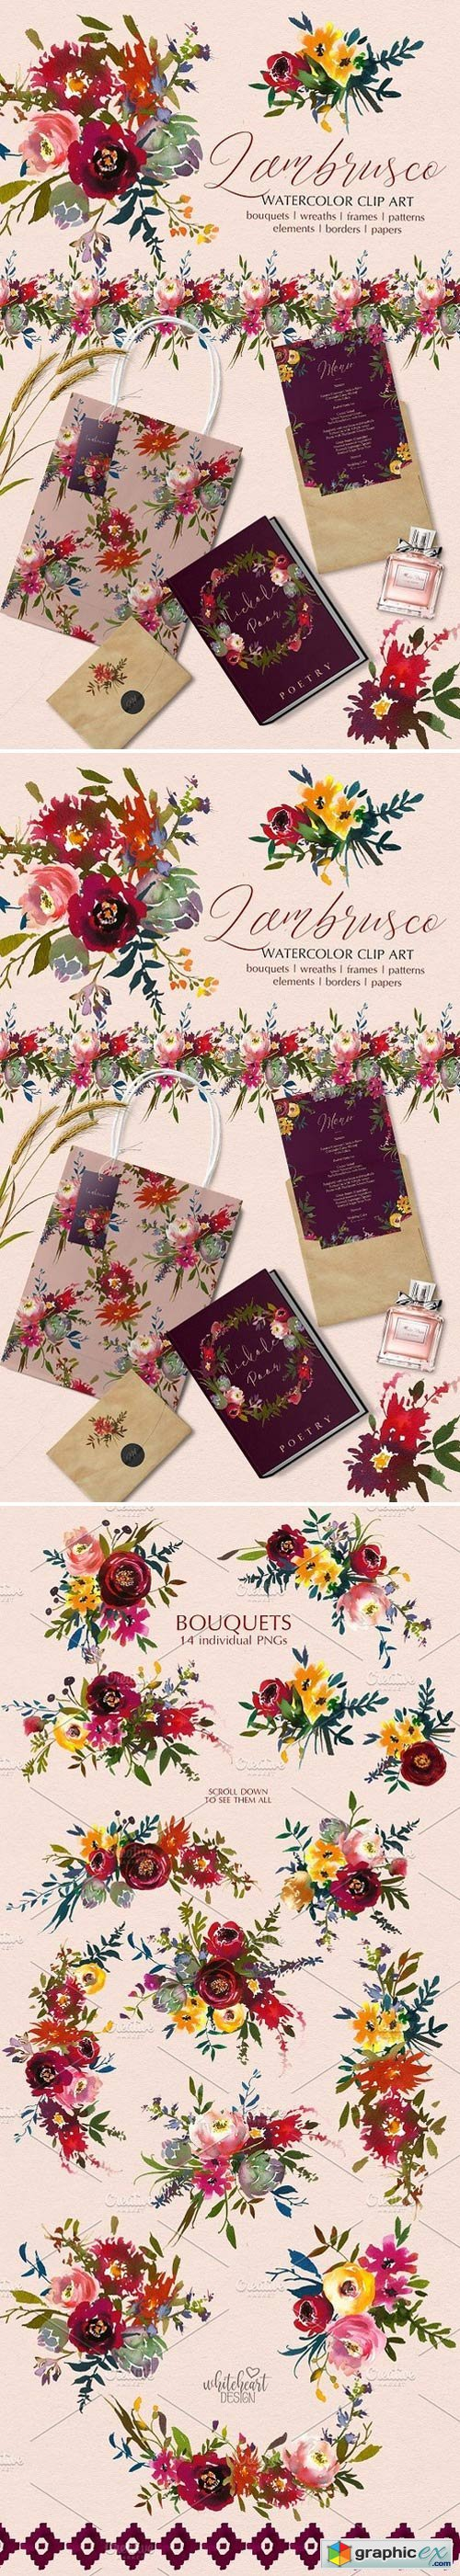 Bordo Watercolor Floral Clip Art Set